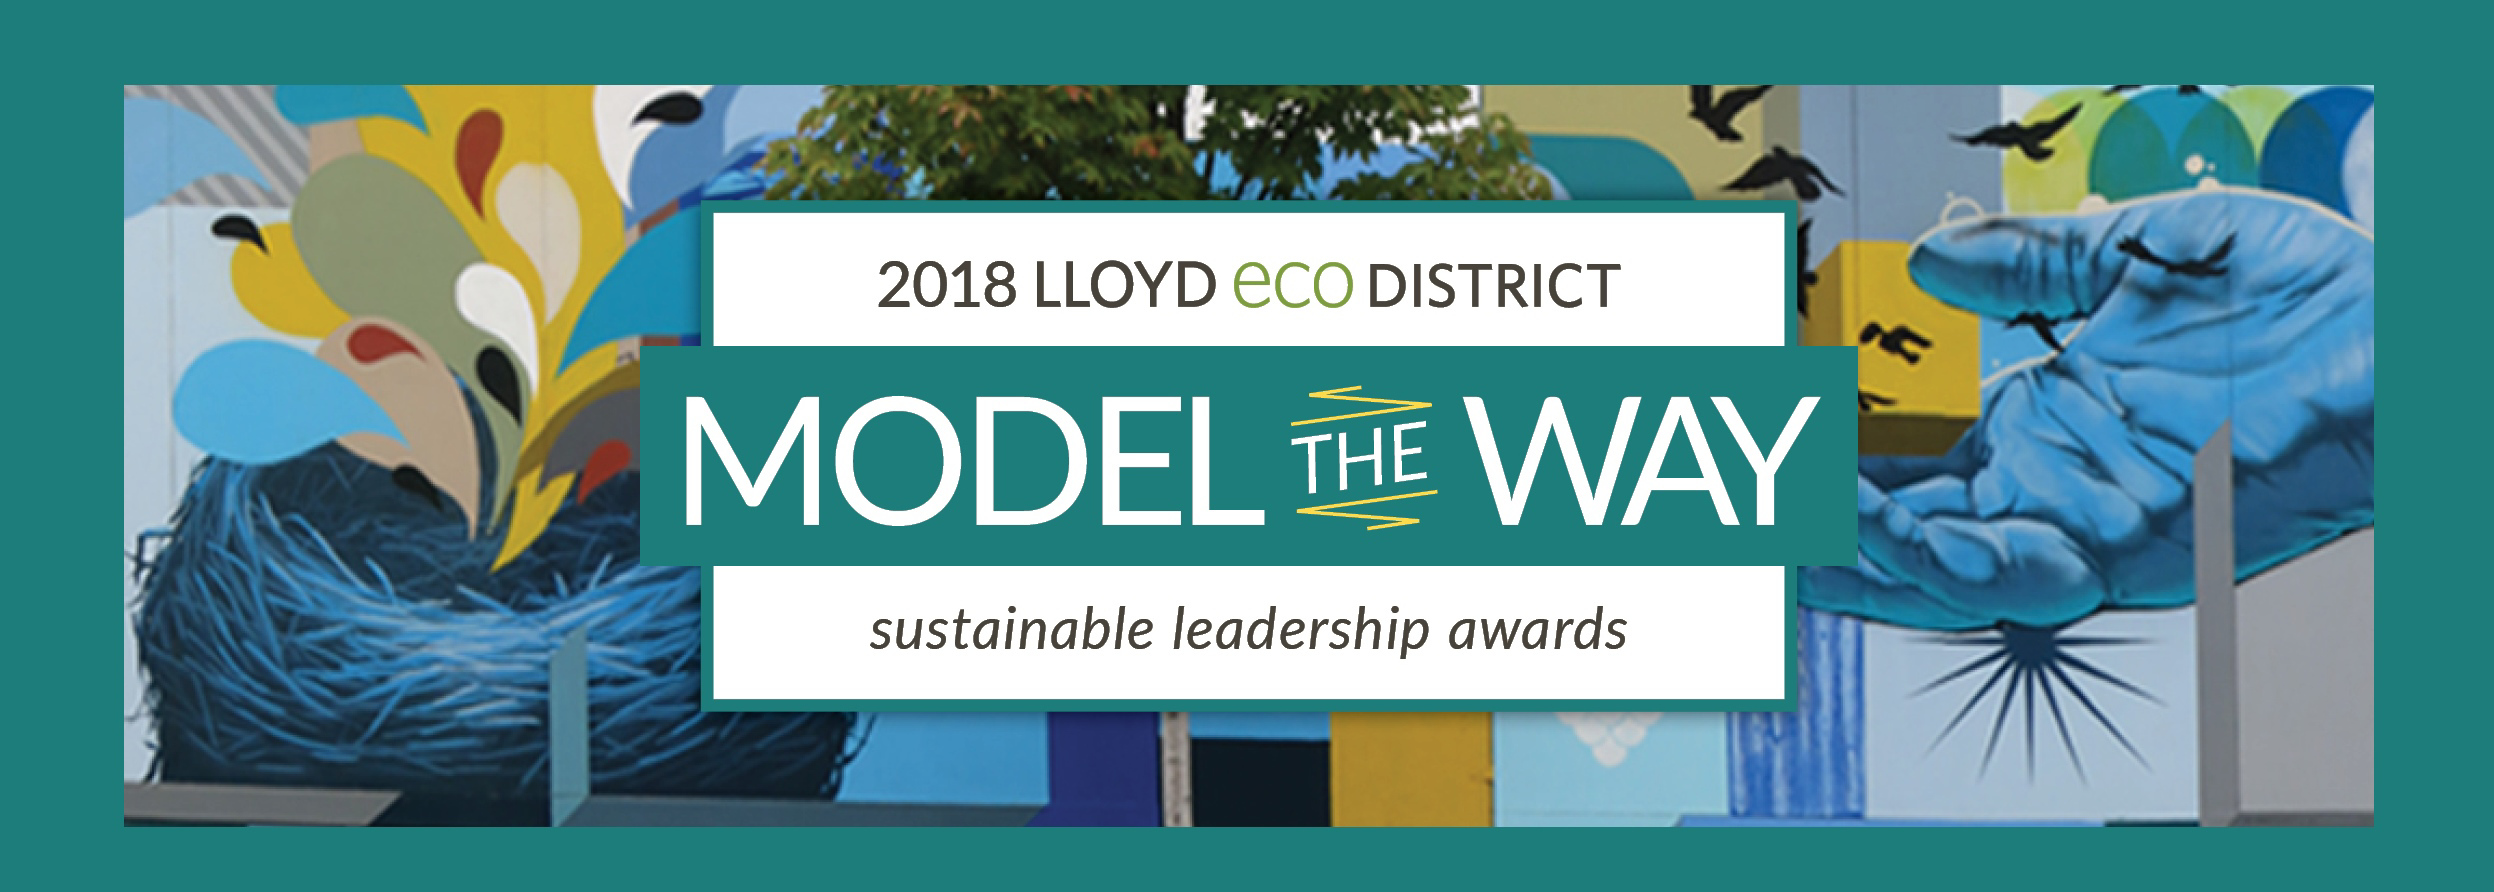 2018 Model the Way Leadership Awards